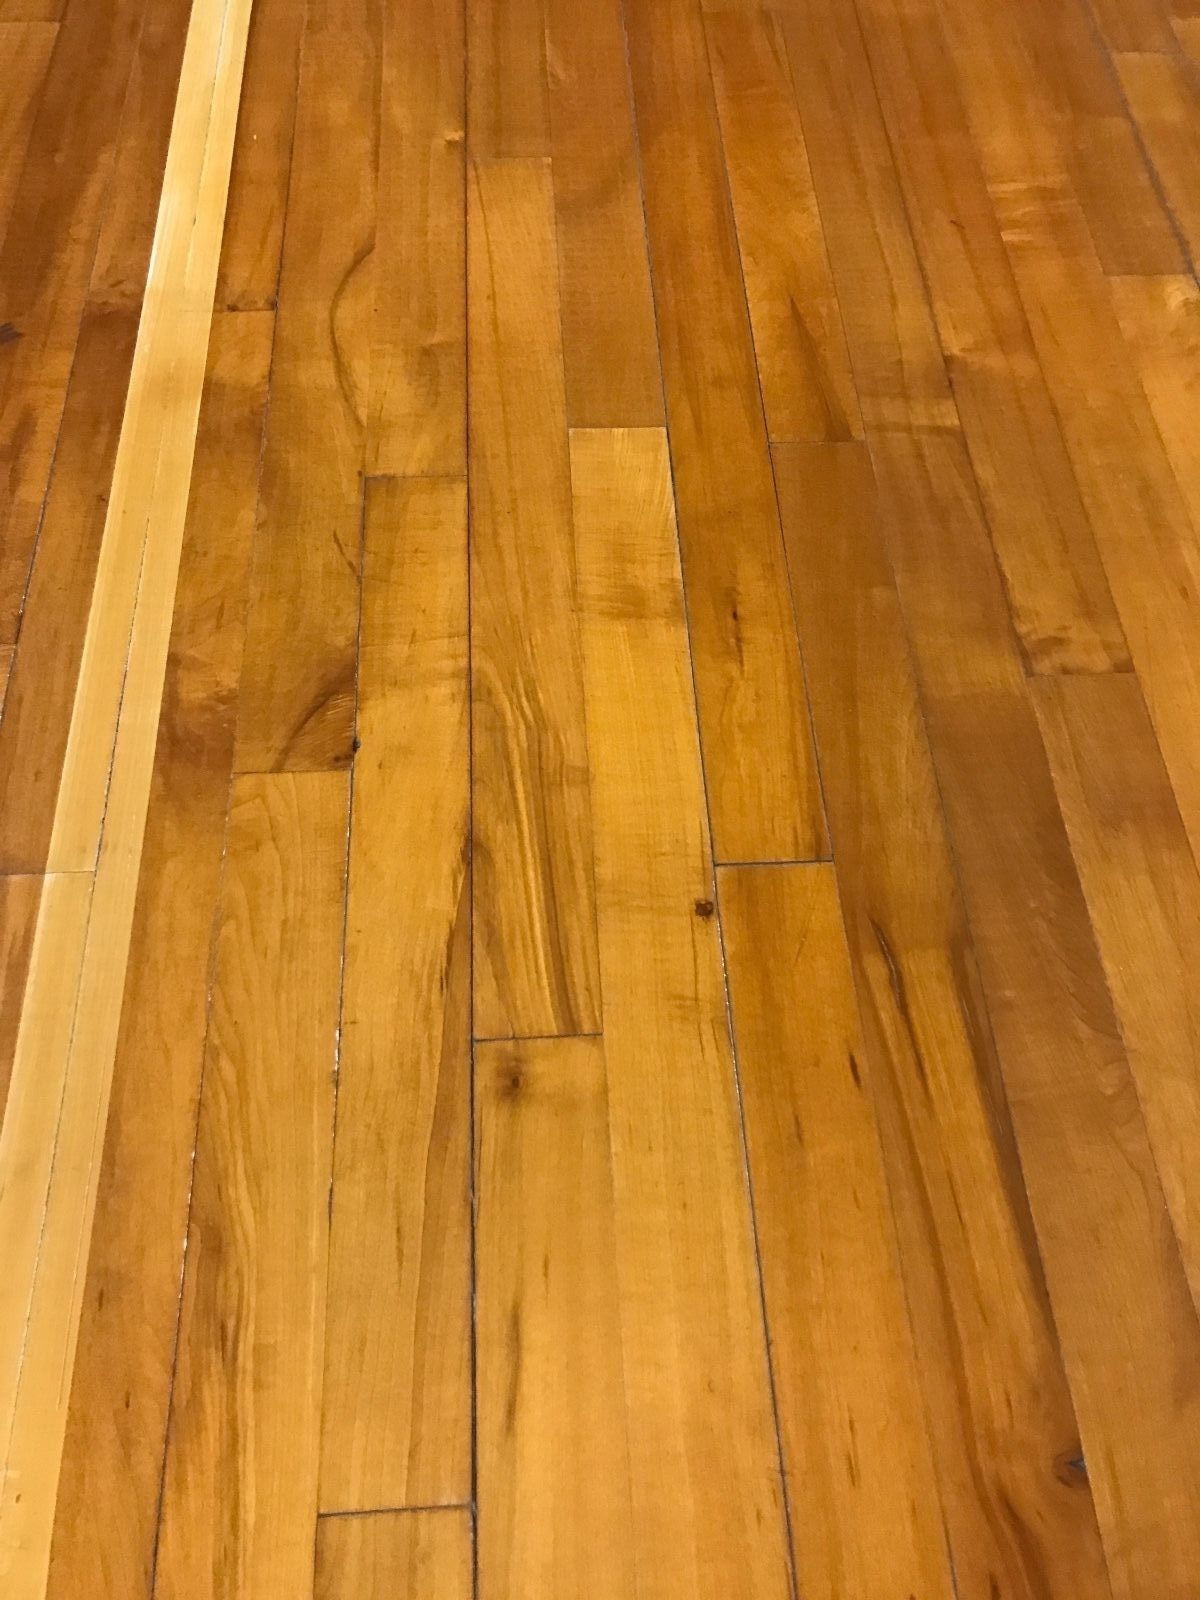 Wide Plank Maple Hardwood Flooring Of Reclaimed Maple Hardwood Flooring 1000 M2 In Stock within Reclaimed Maple Hardwood Flooring 1000 M2 In Stock Ebay